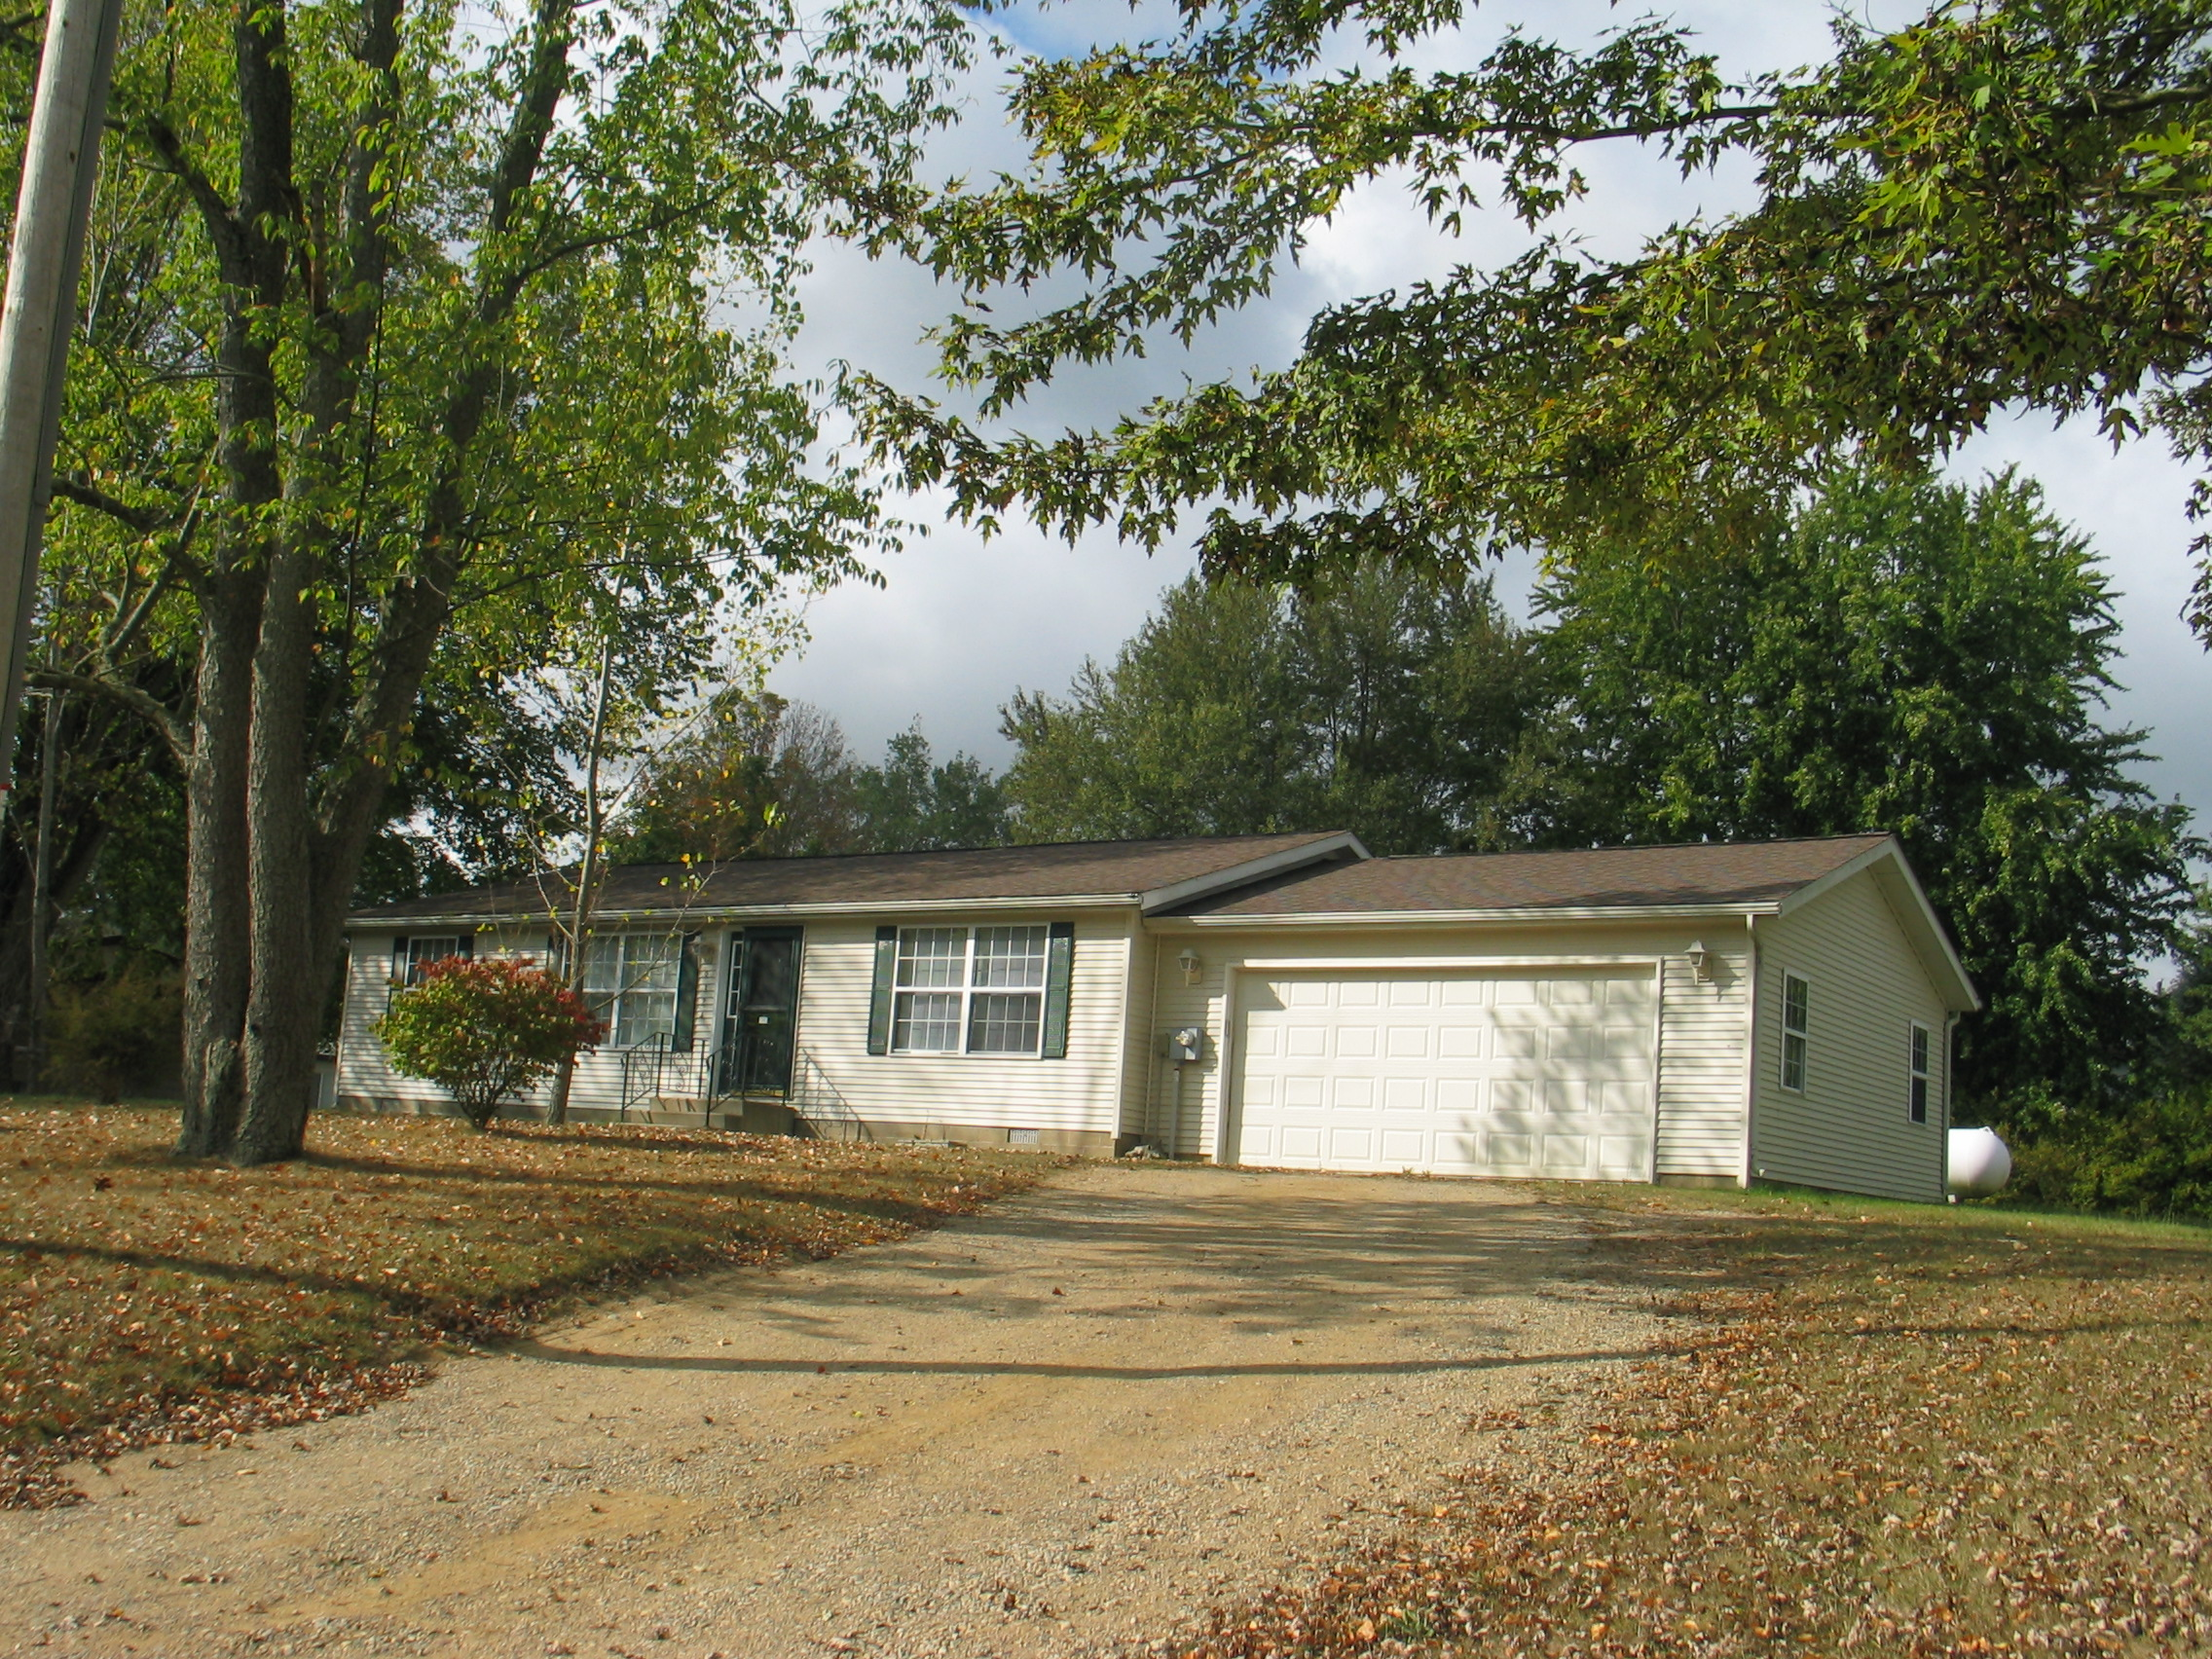 9324 Terraceview Ct, Jerome,-MI, MI 49249